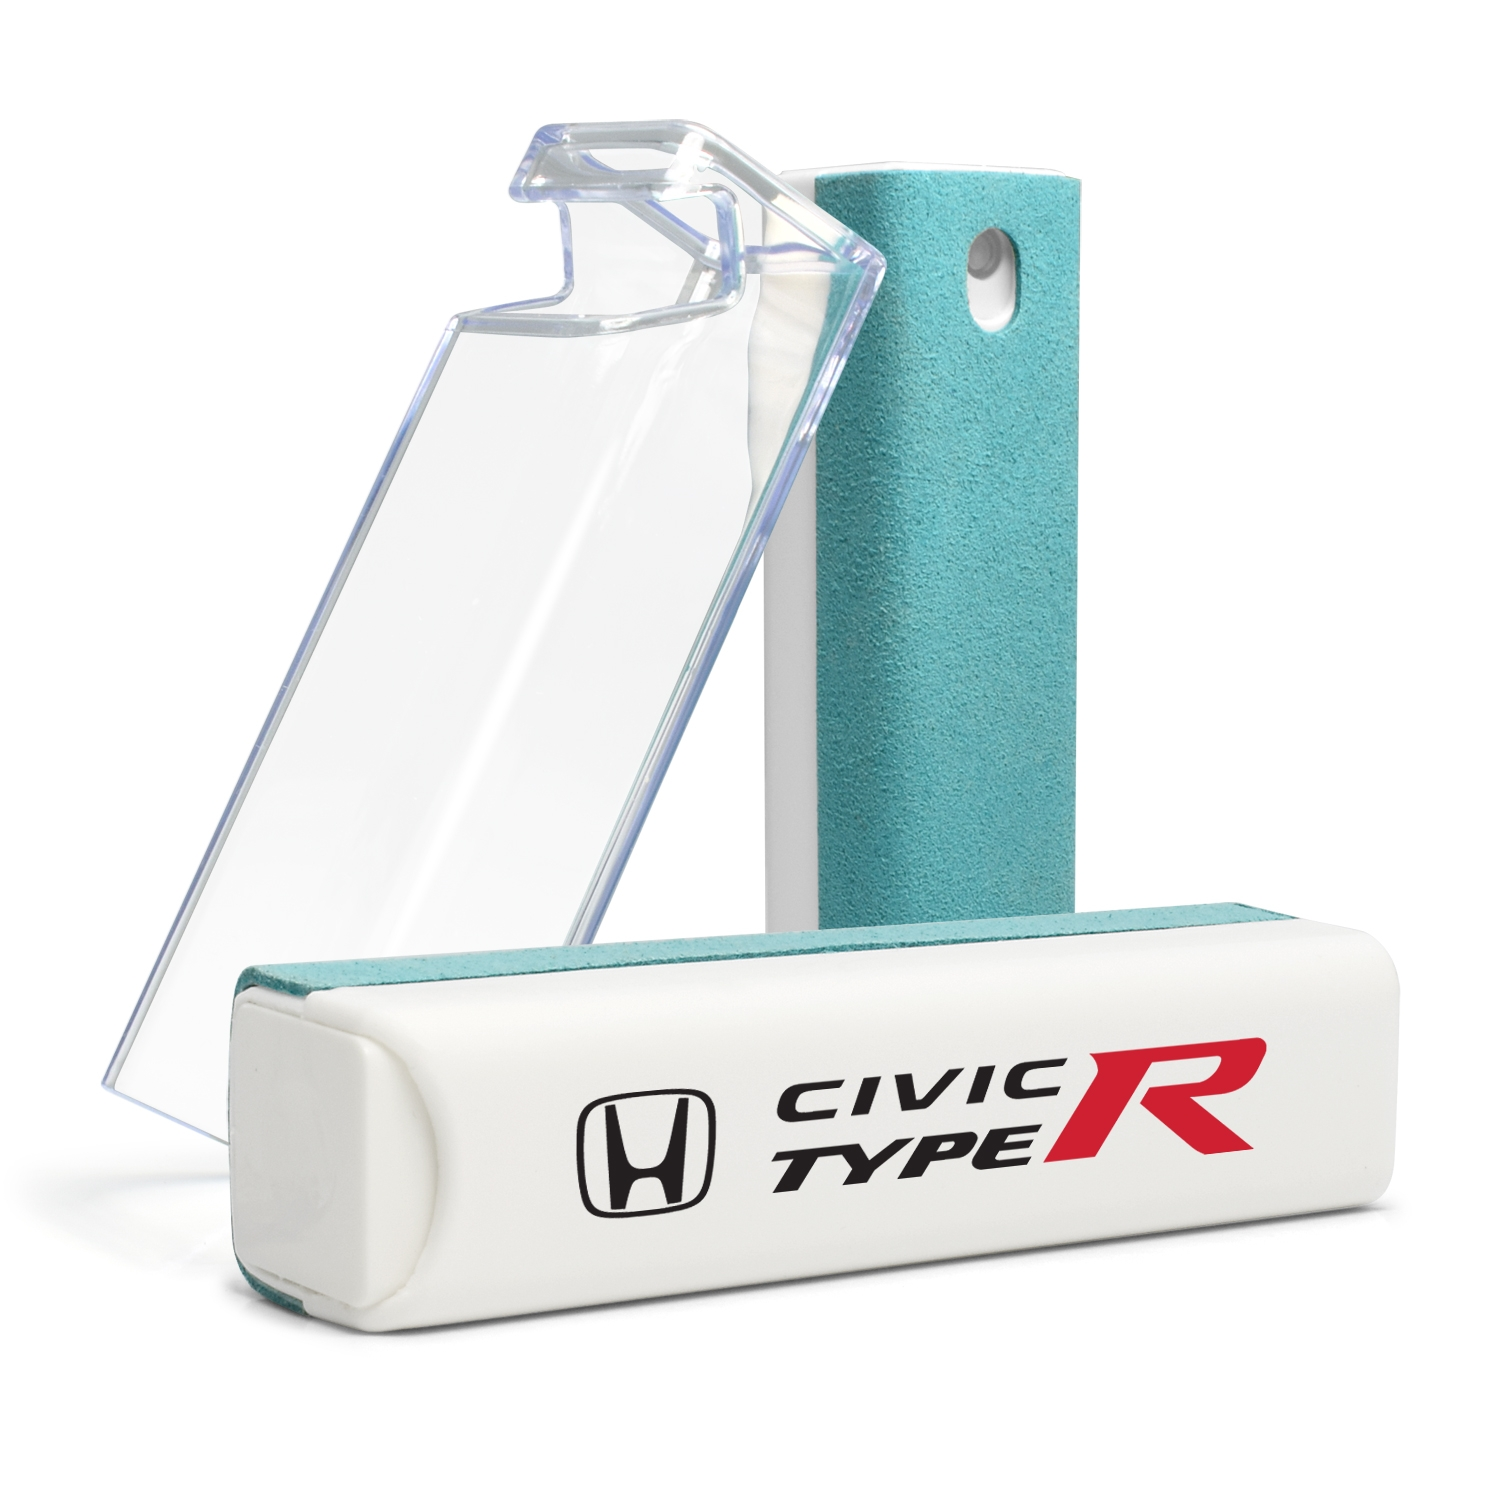 Honda Civic Type-R All-in-One Blue Wipe Navigation Screen Cleaner with Clear Cell Phone Stand